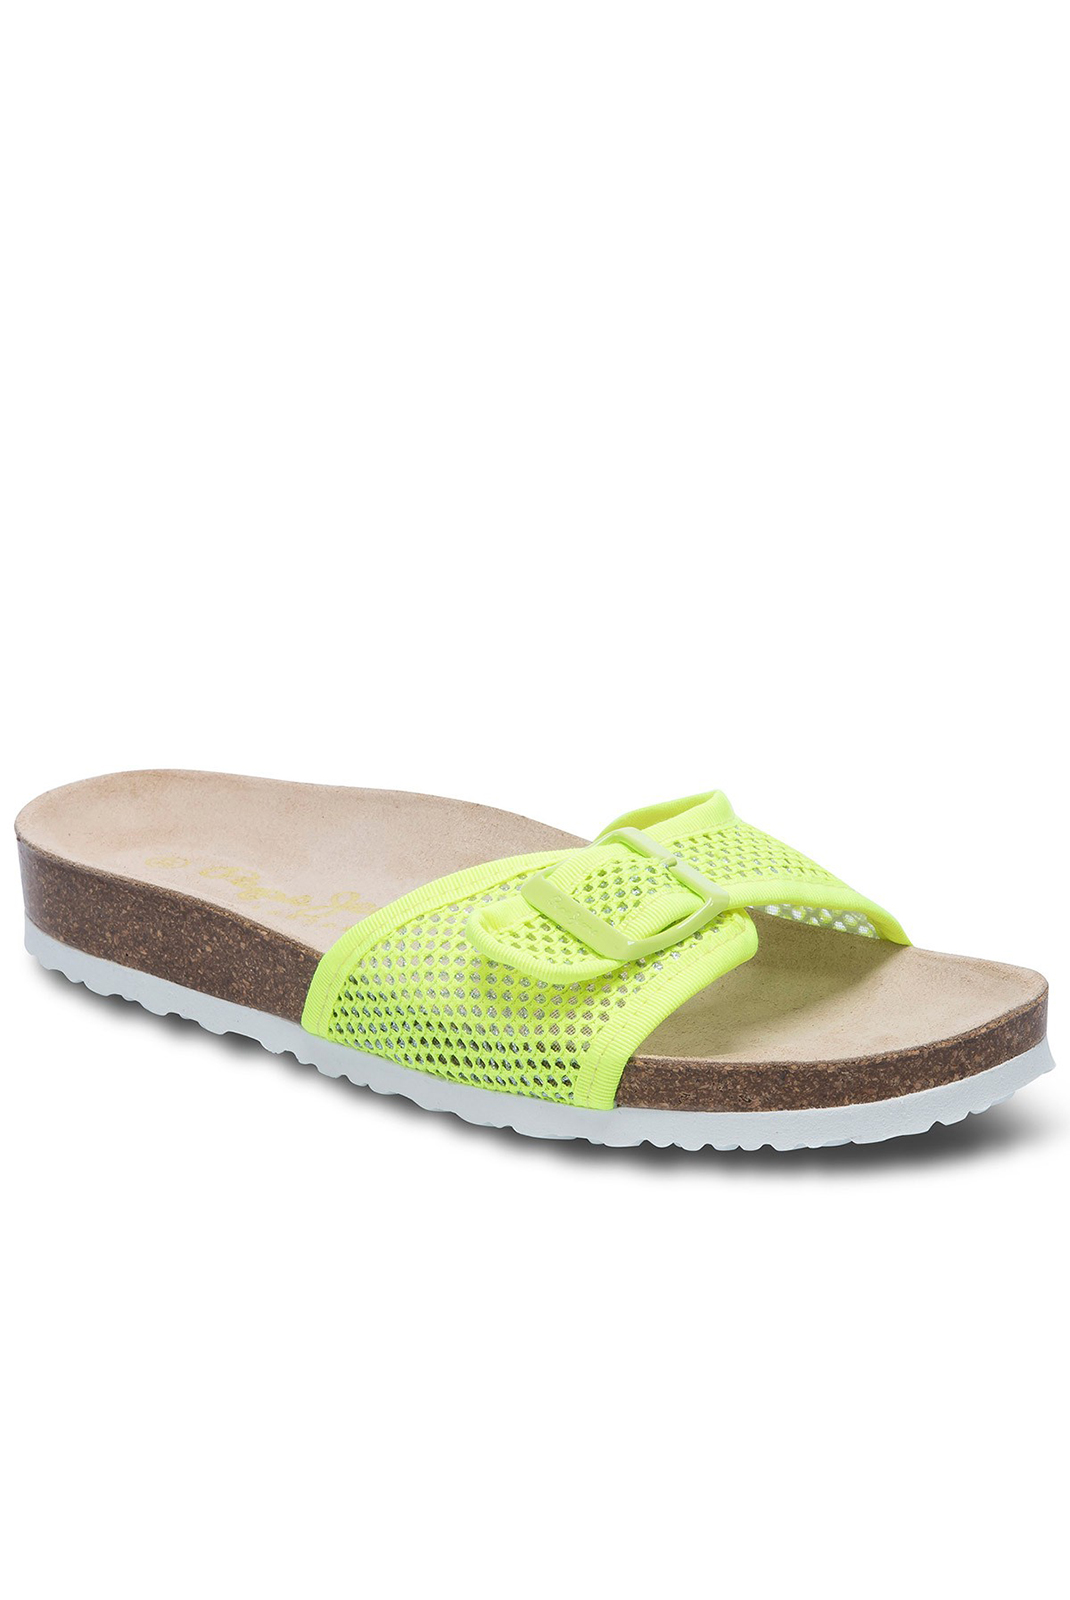 Chaussures  Pepe jeans PLS90330 OBAN MESH 639 LIMA